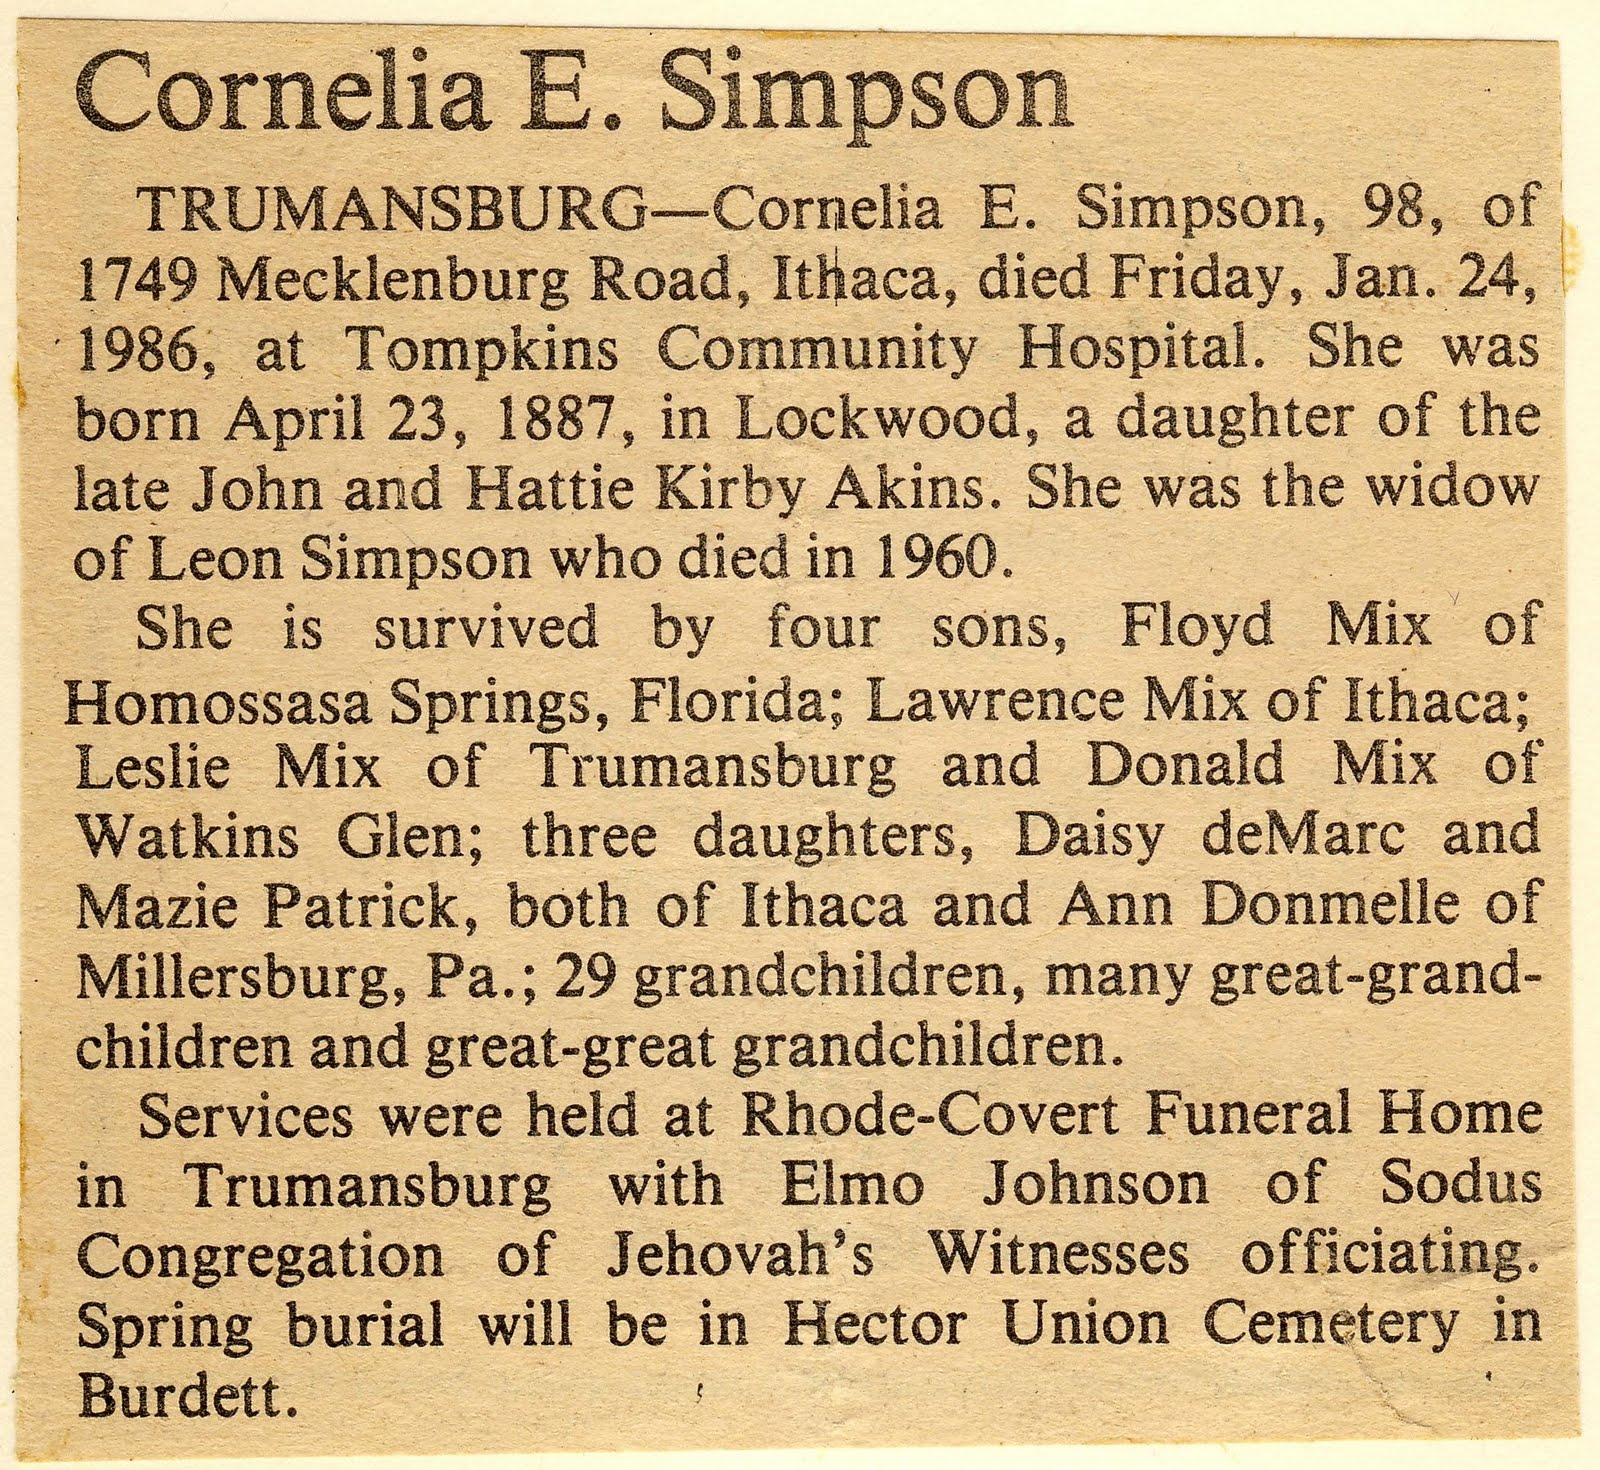 fill in the blank methodology given. printable obituary template ...